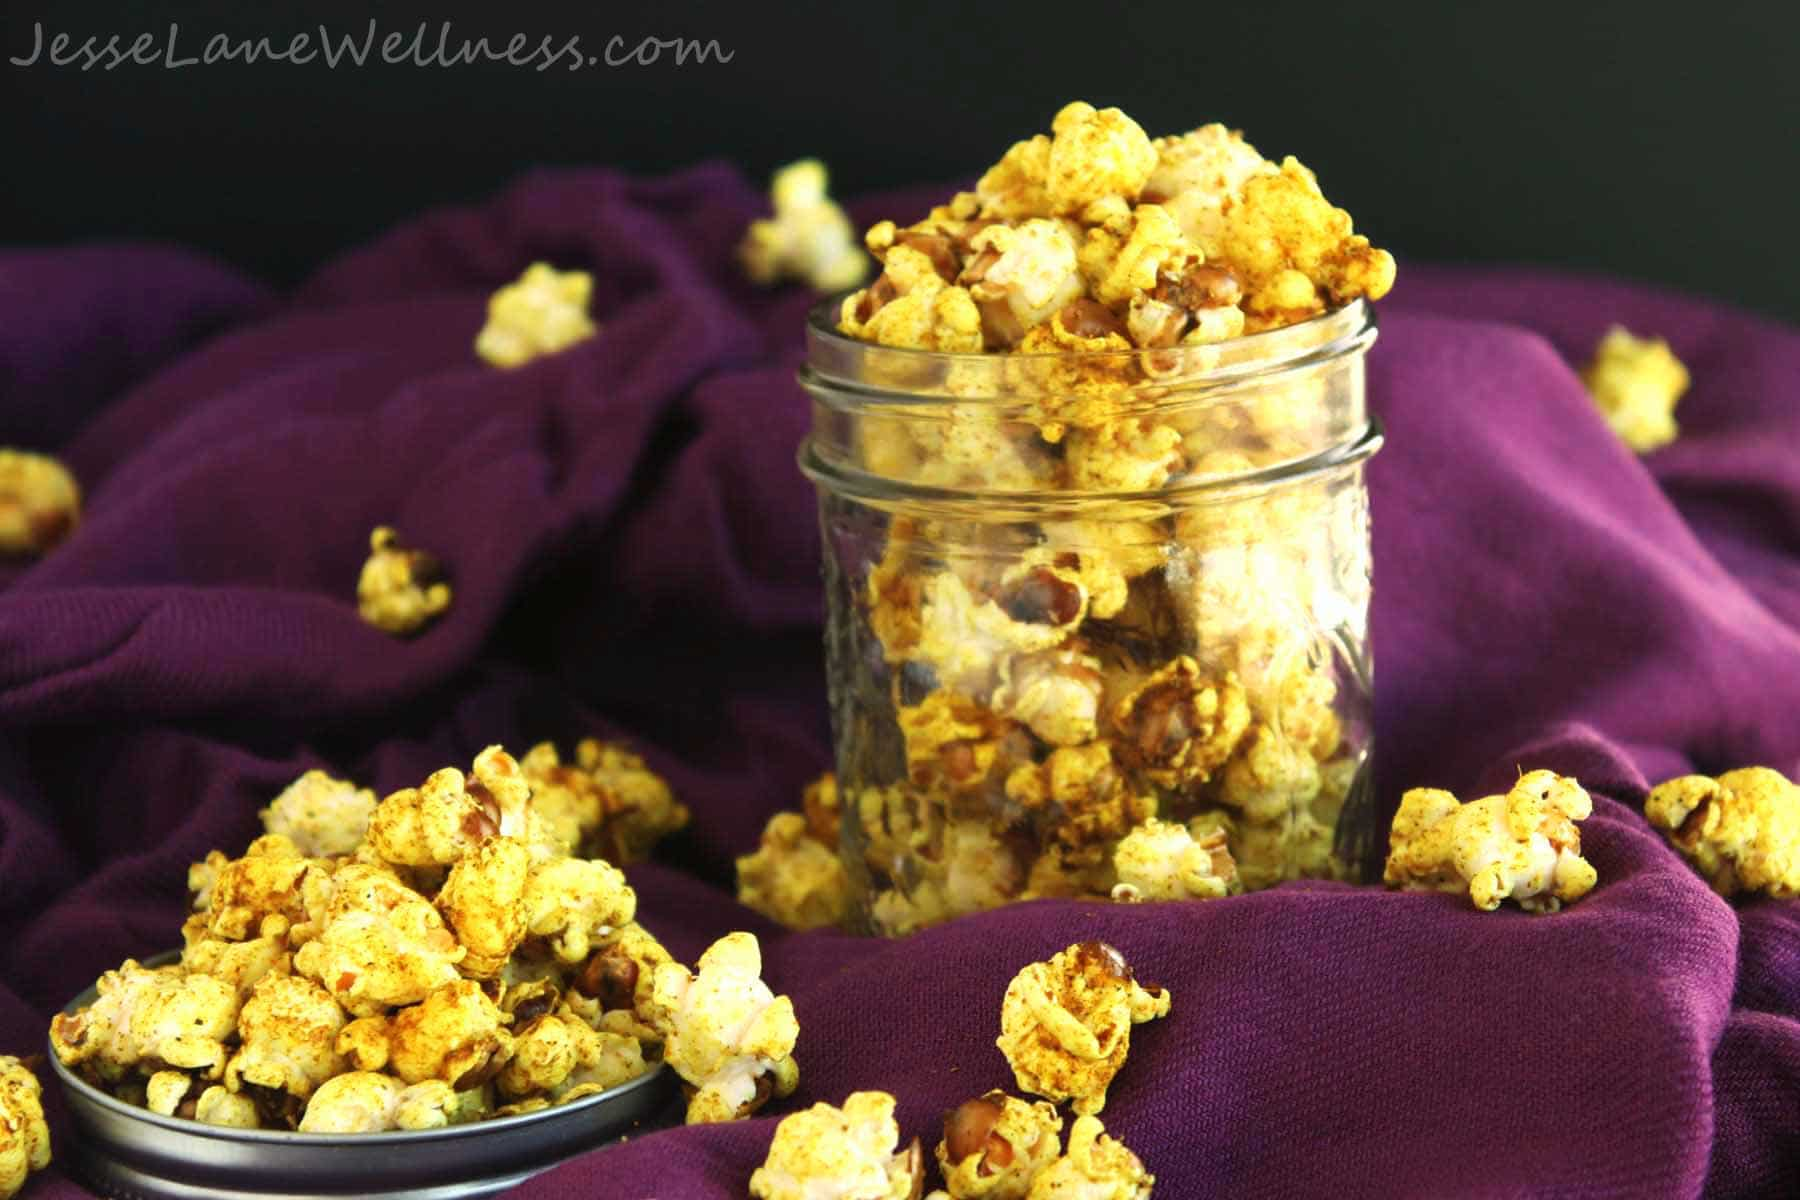 Coconut Curry Popcorn by @JesseLWellness #cocnut #popcorn